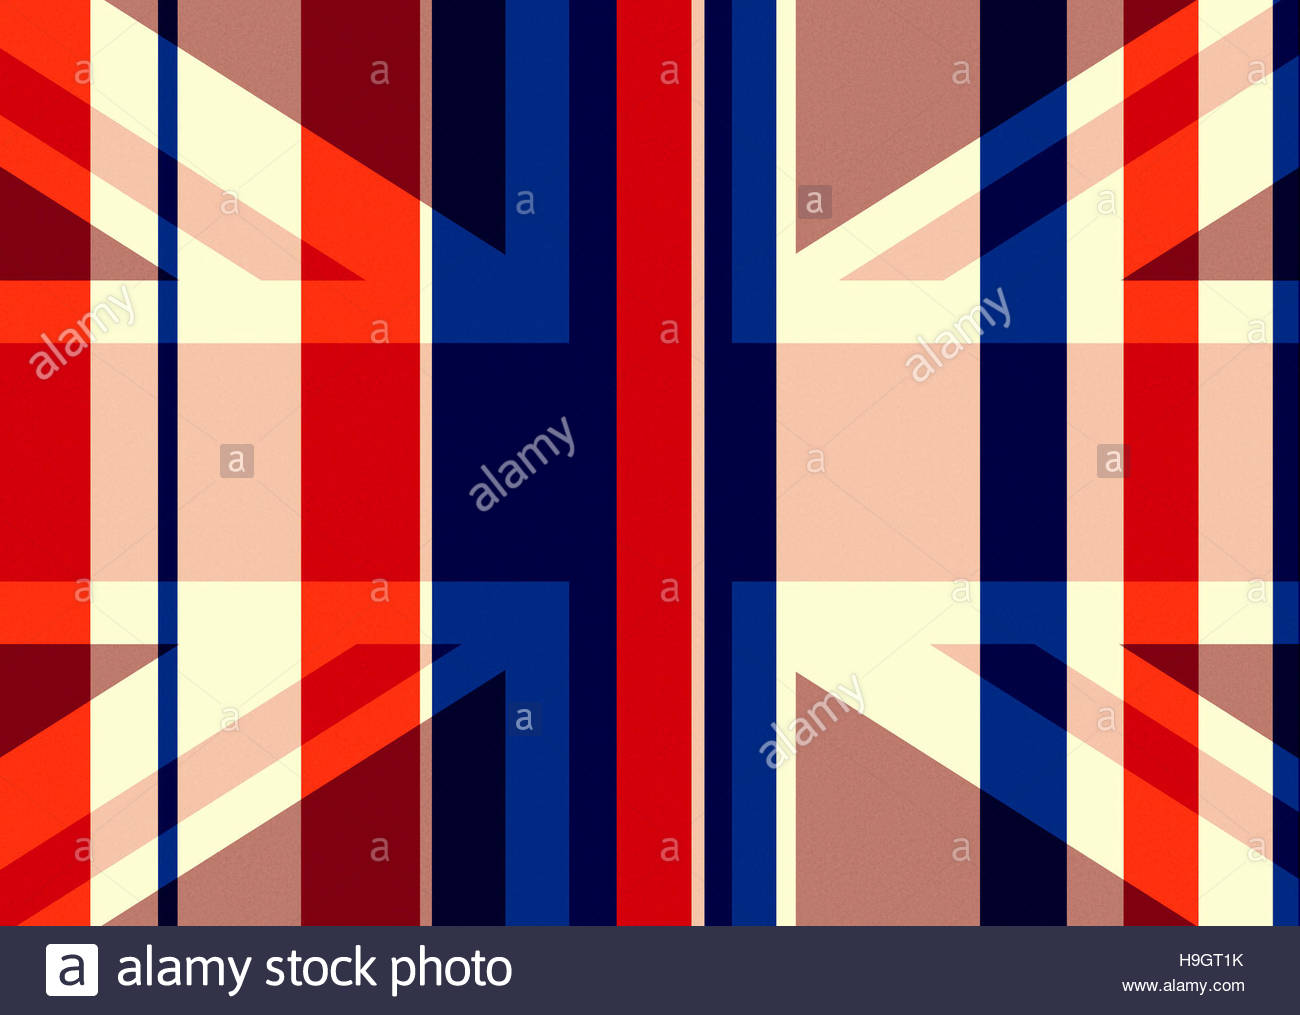 Union Jack - homage to the flag - retro classic illustration - Stock Image